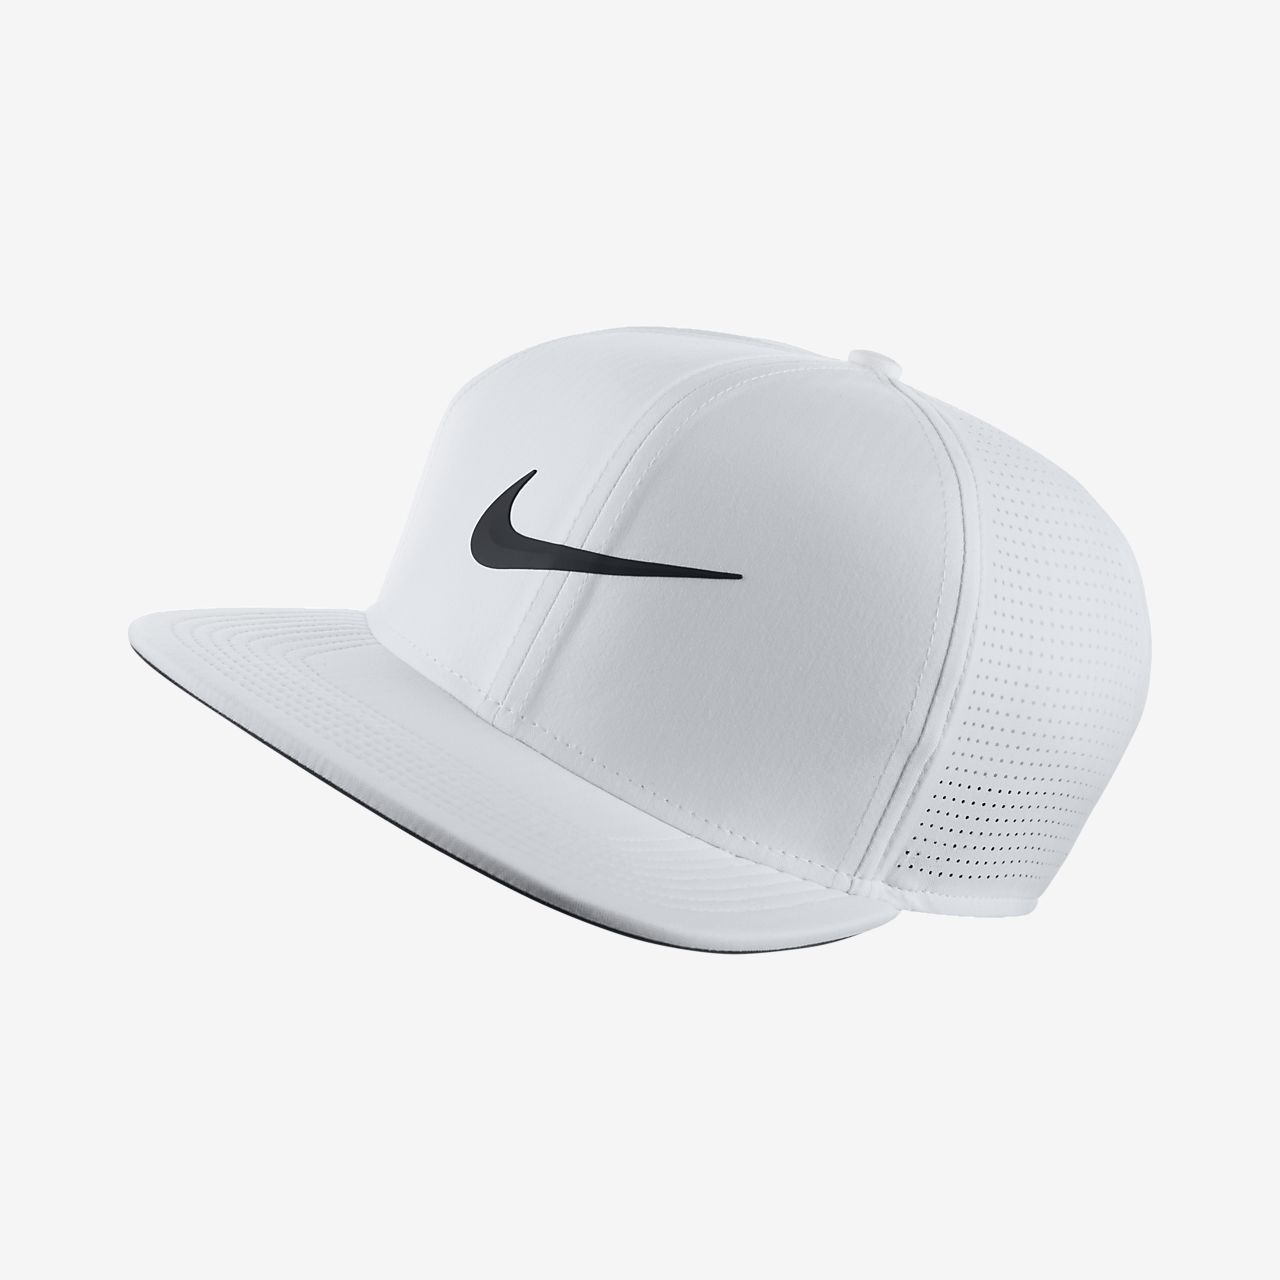 nike aerobill adjustable golf hat nike com